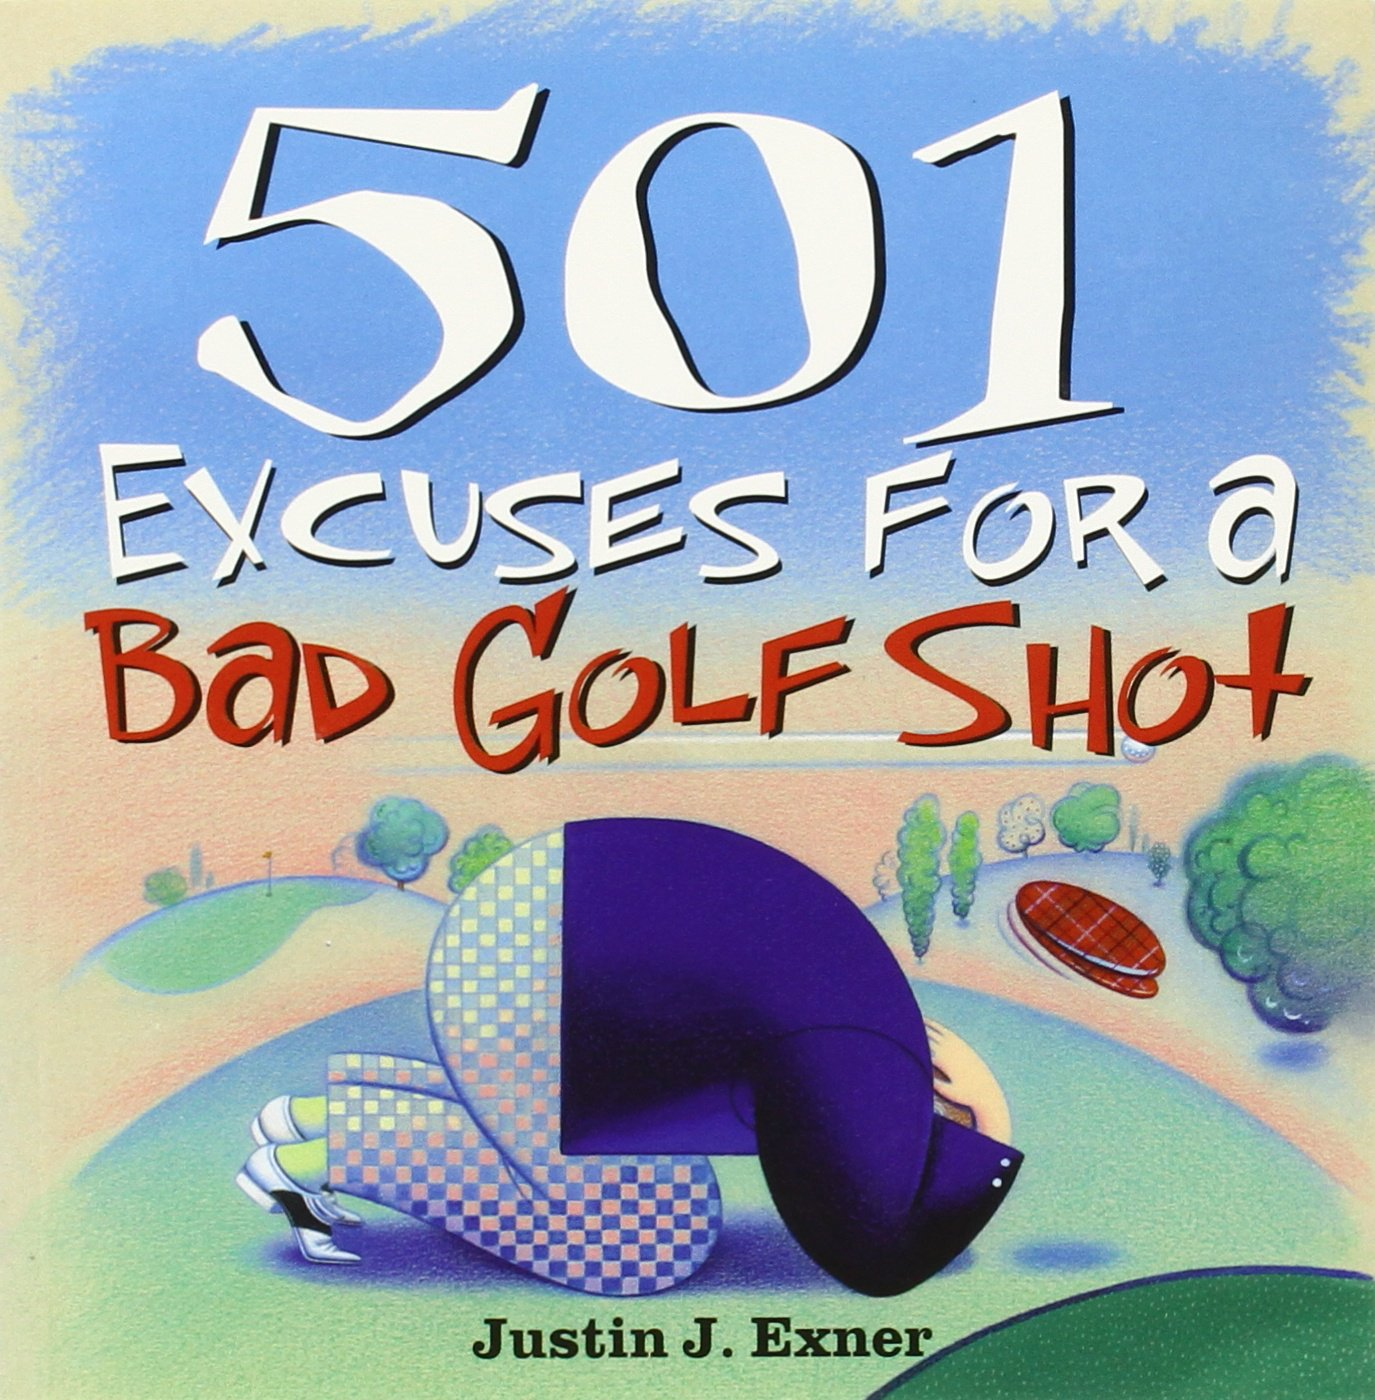 501 Excuses Bad Golf Shot product image